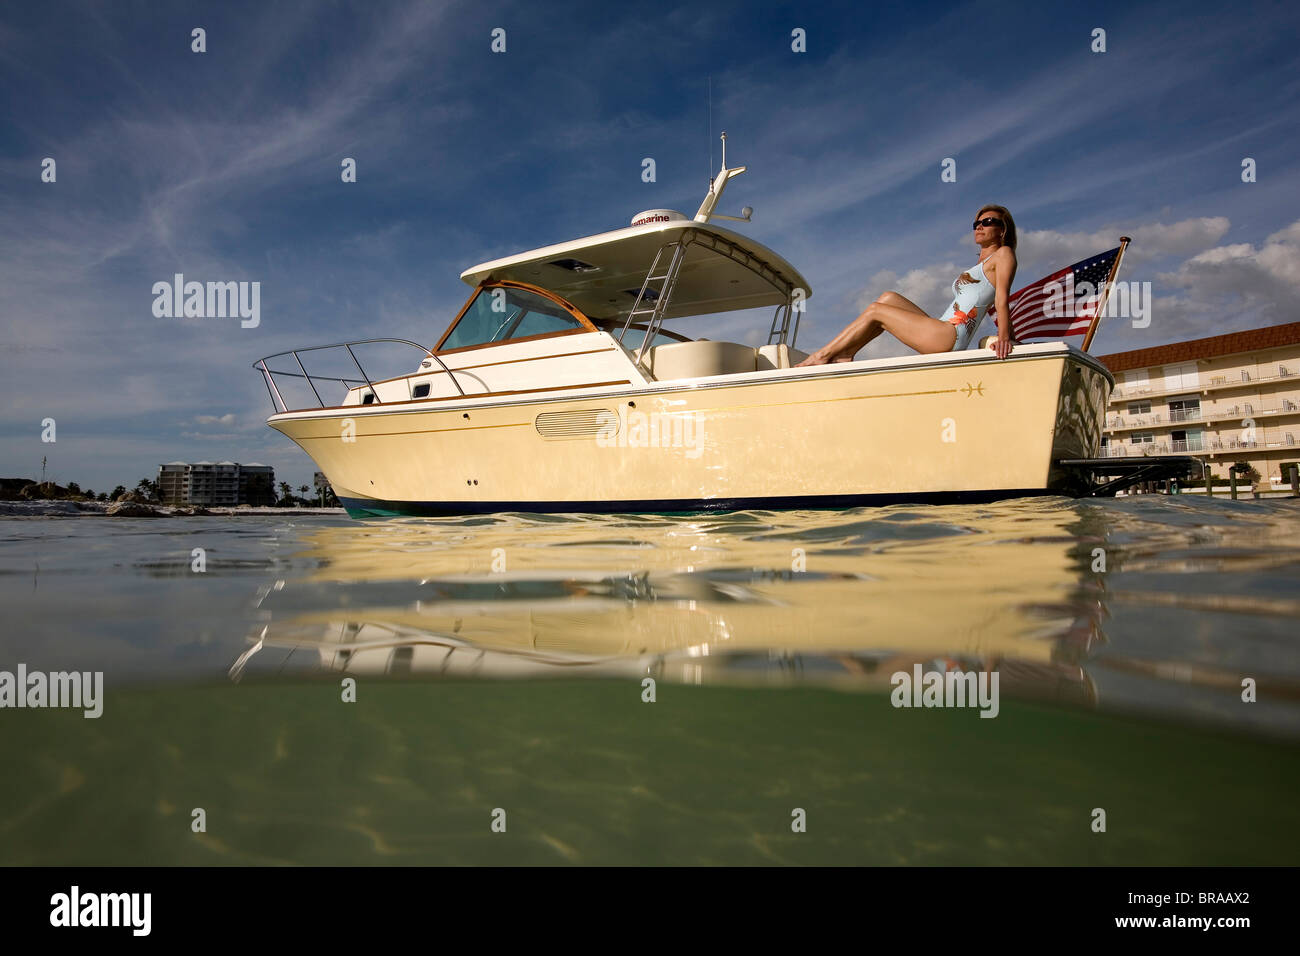 Woman relaxing on the stern of a Surf Hunter 29 Inboard off Marco Island, Florida, USA. Model and property released - Stock Image